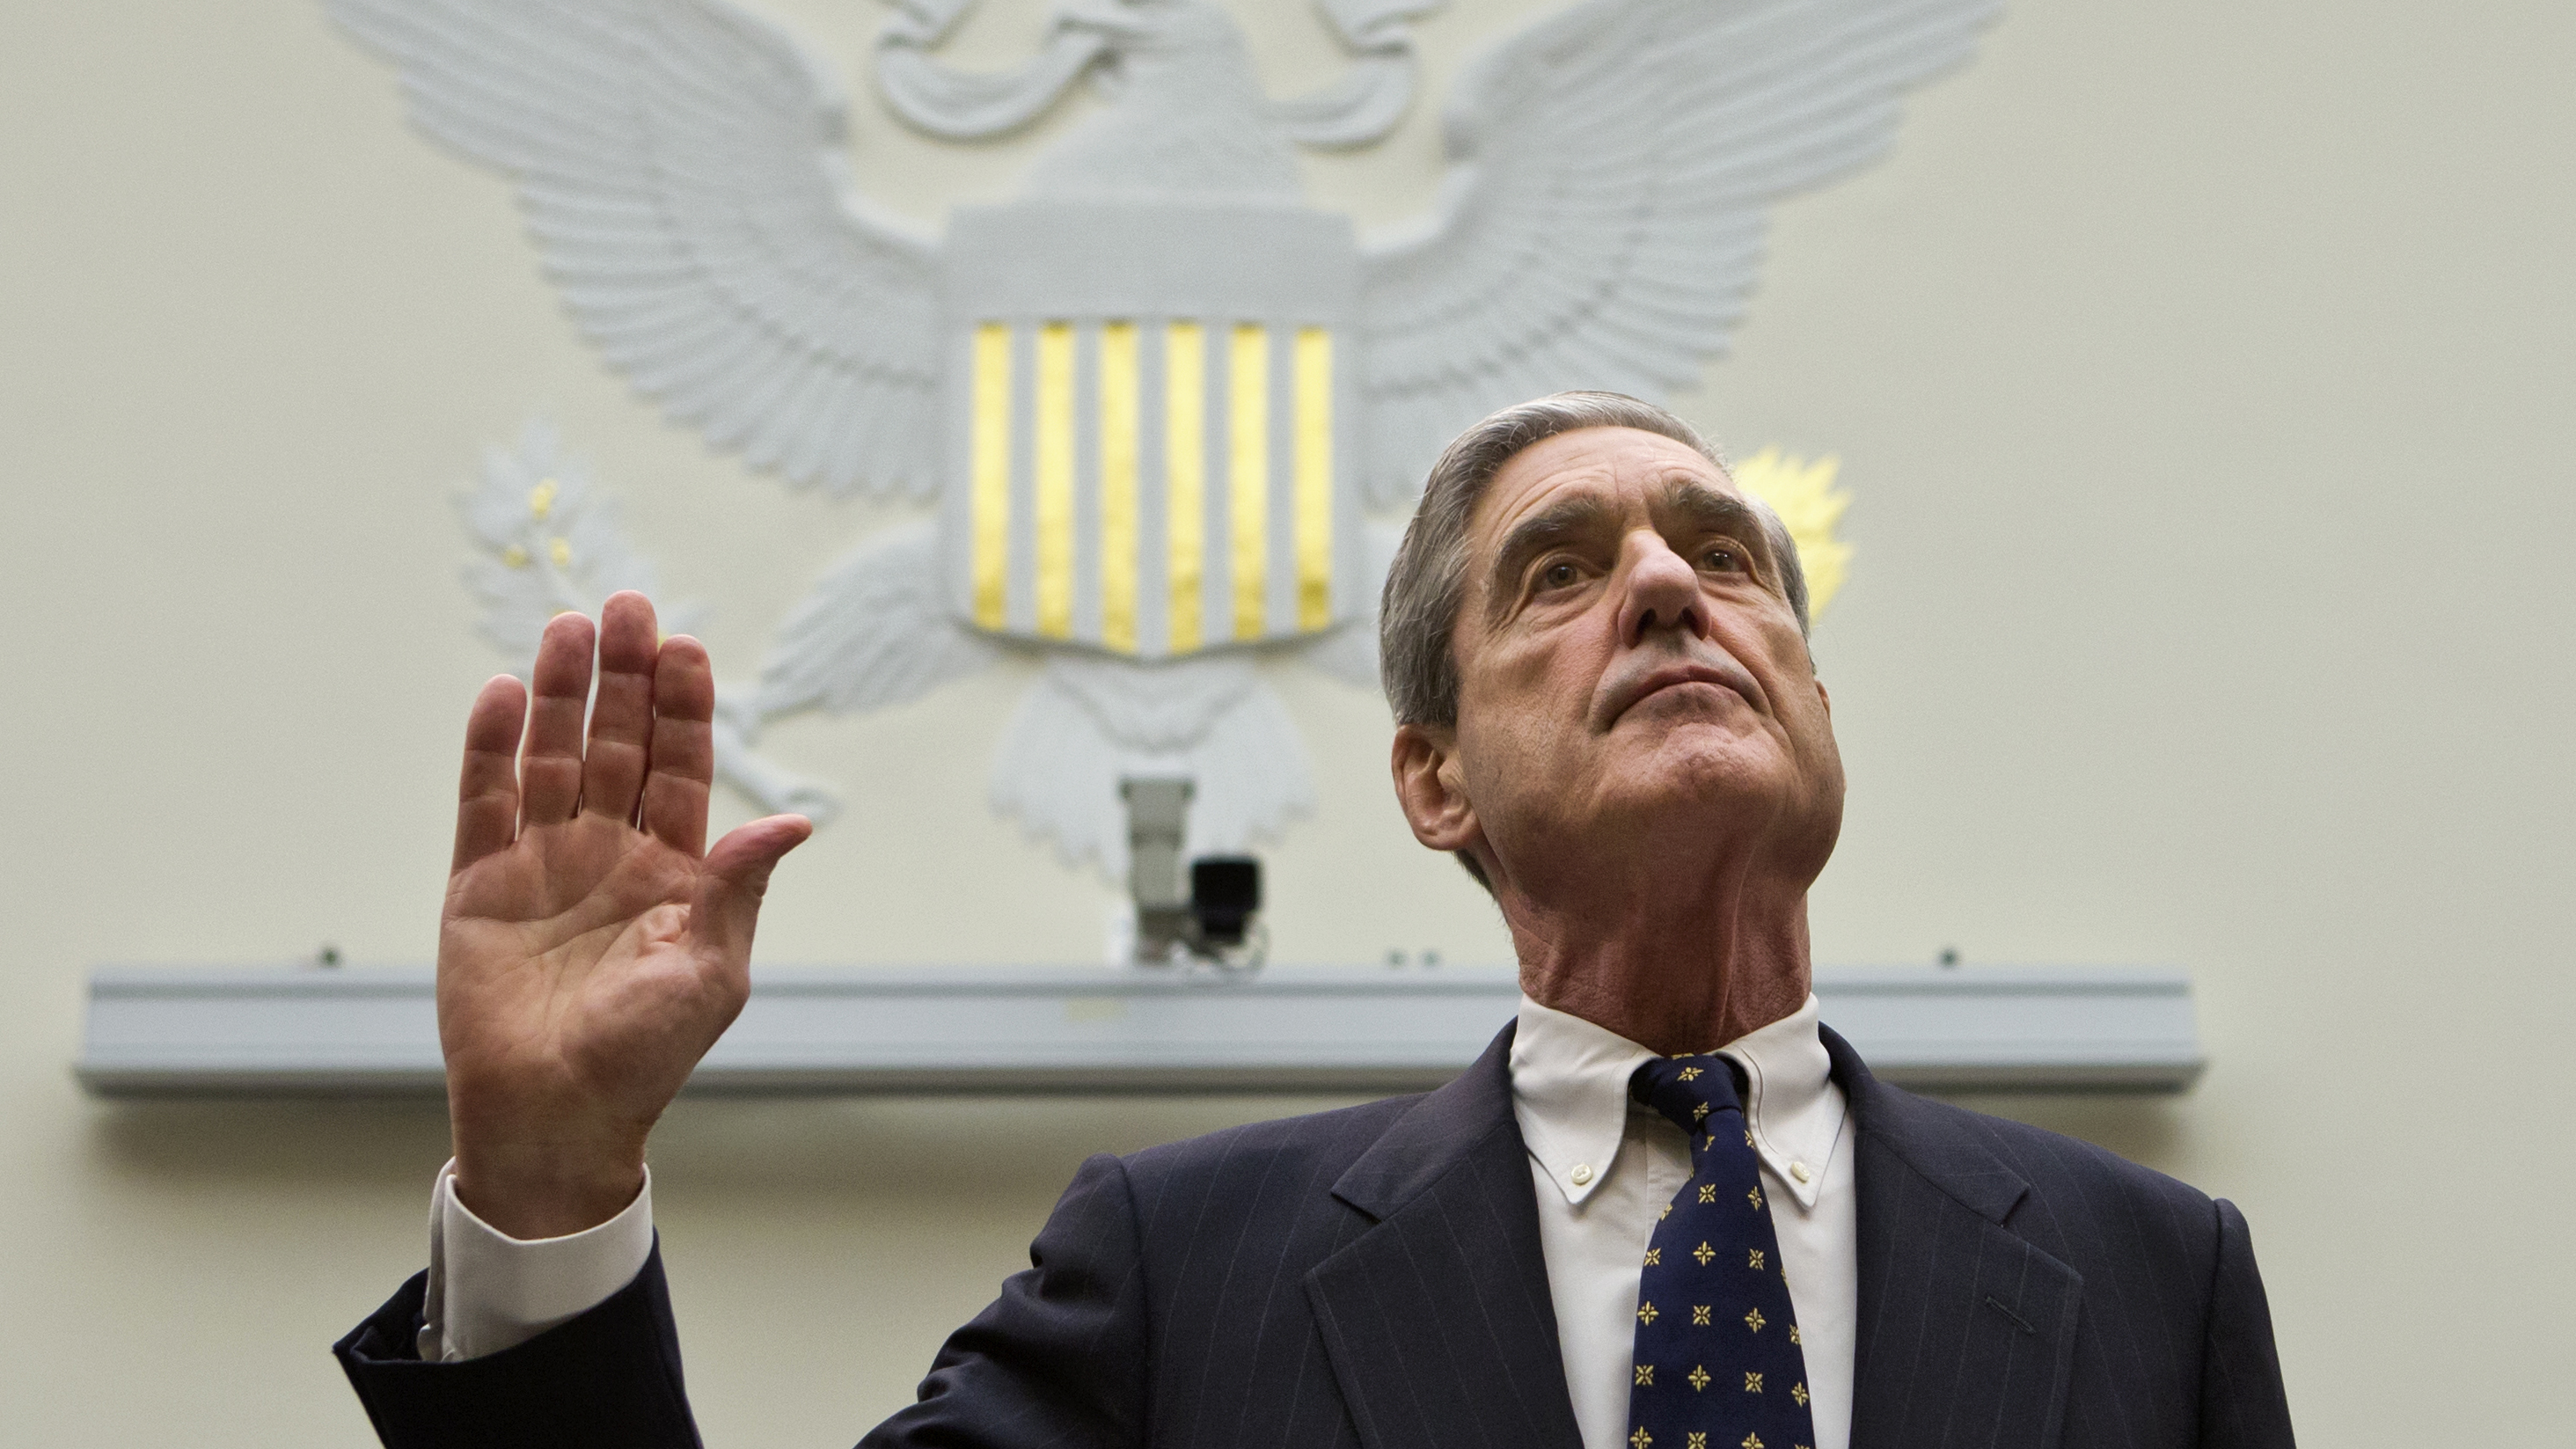 Robert Mueller is sworn in on Capitol Hill, prior to testifying before the House Judiciary Committeein 2013.